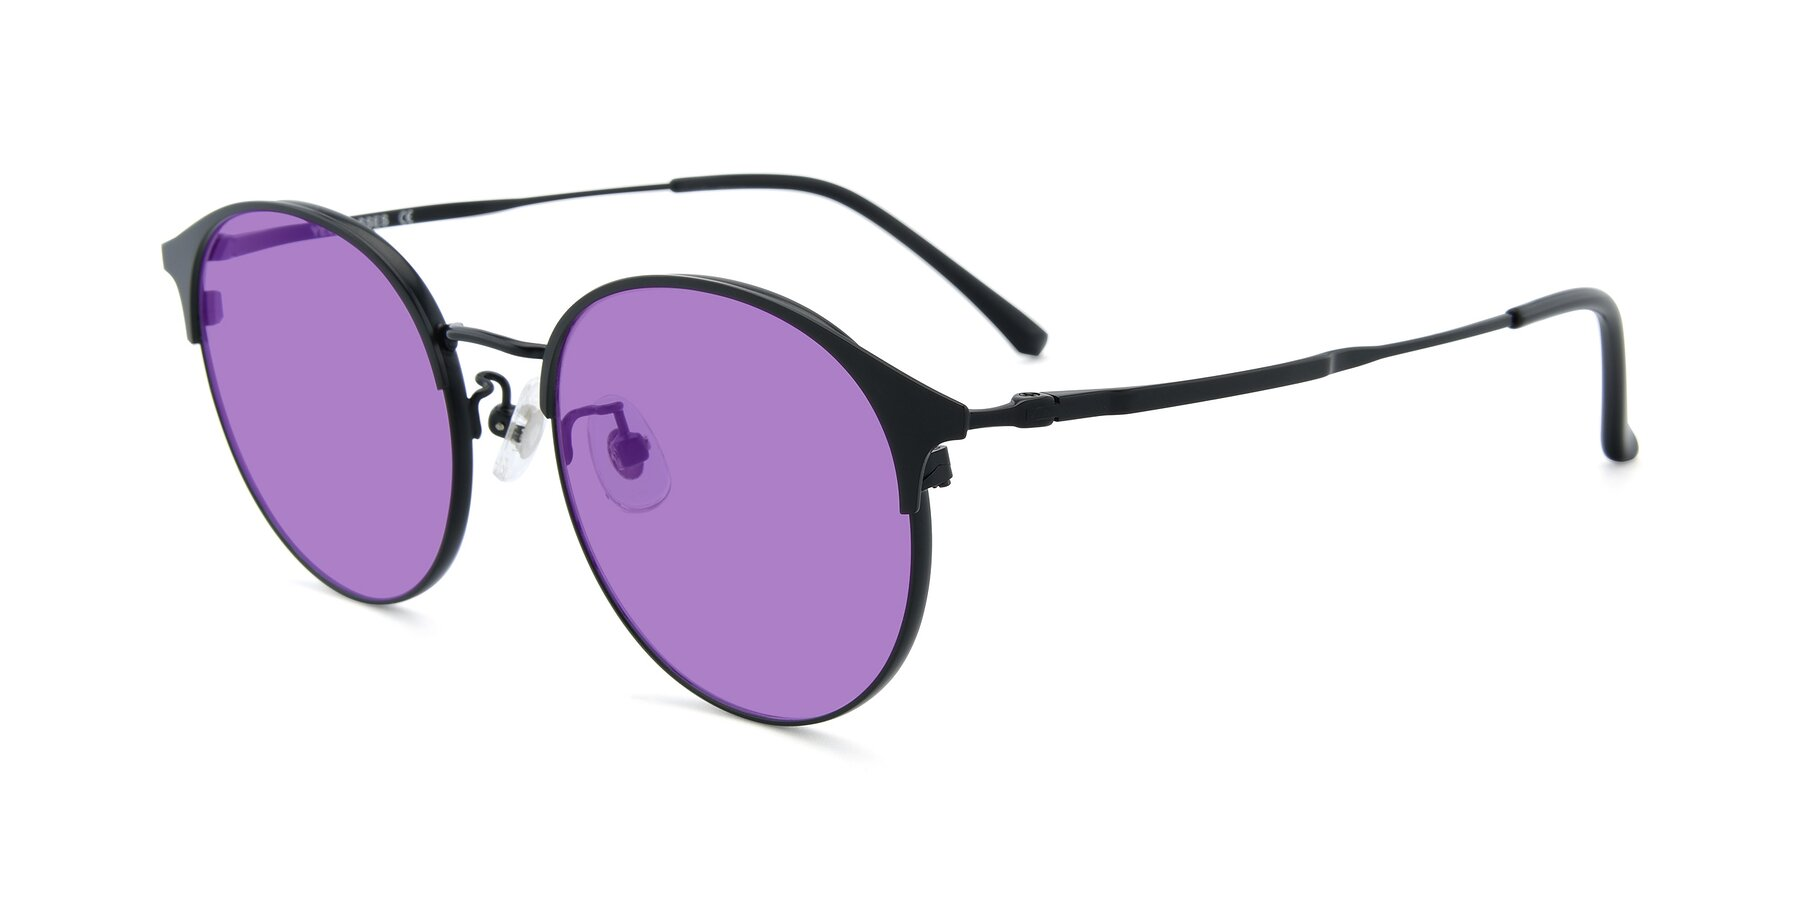 Angle of XC-8031 in Matte Black with Medium Purple Tinted Lenses